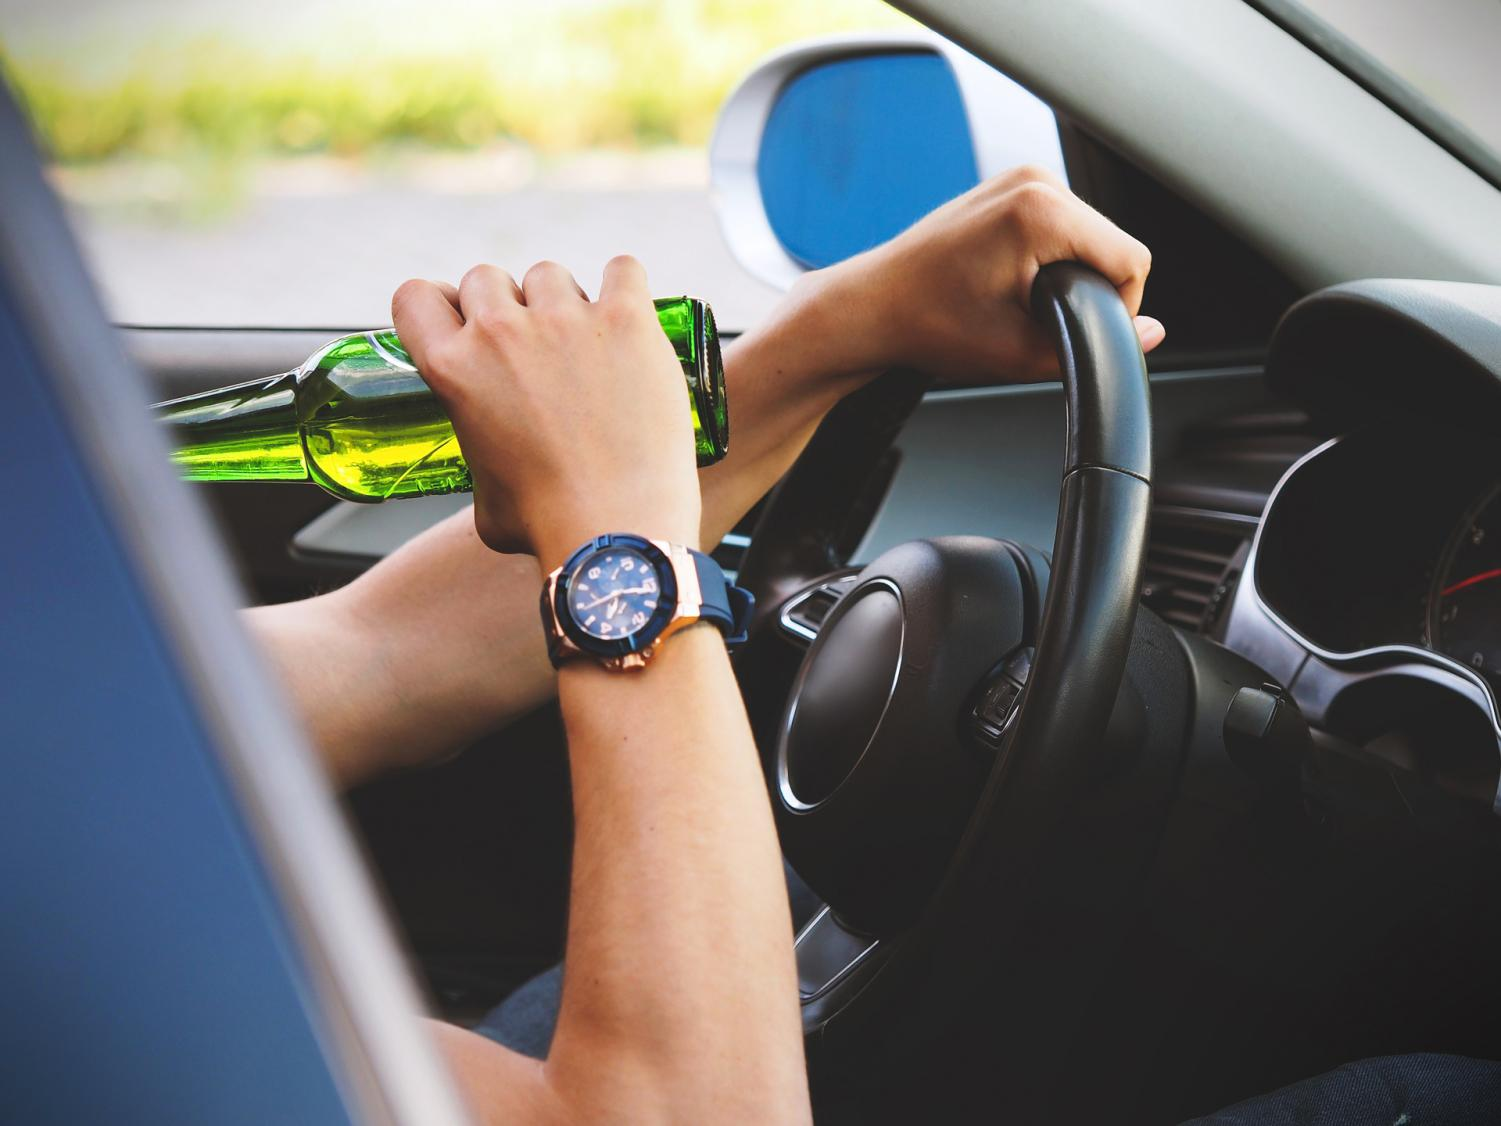 First-time DUI offenders will be required to have further consequences with the addition of ignition interlock devices, which is essentially a breathalyzer.